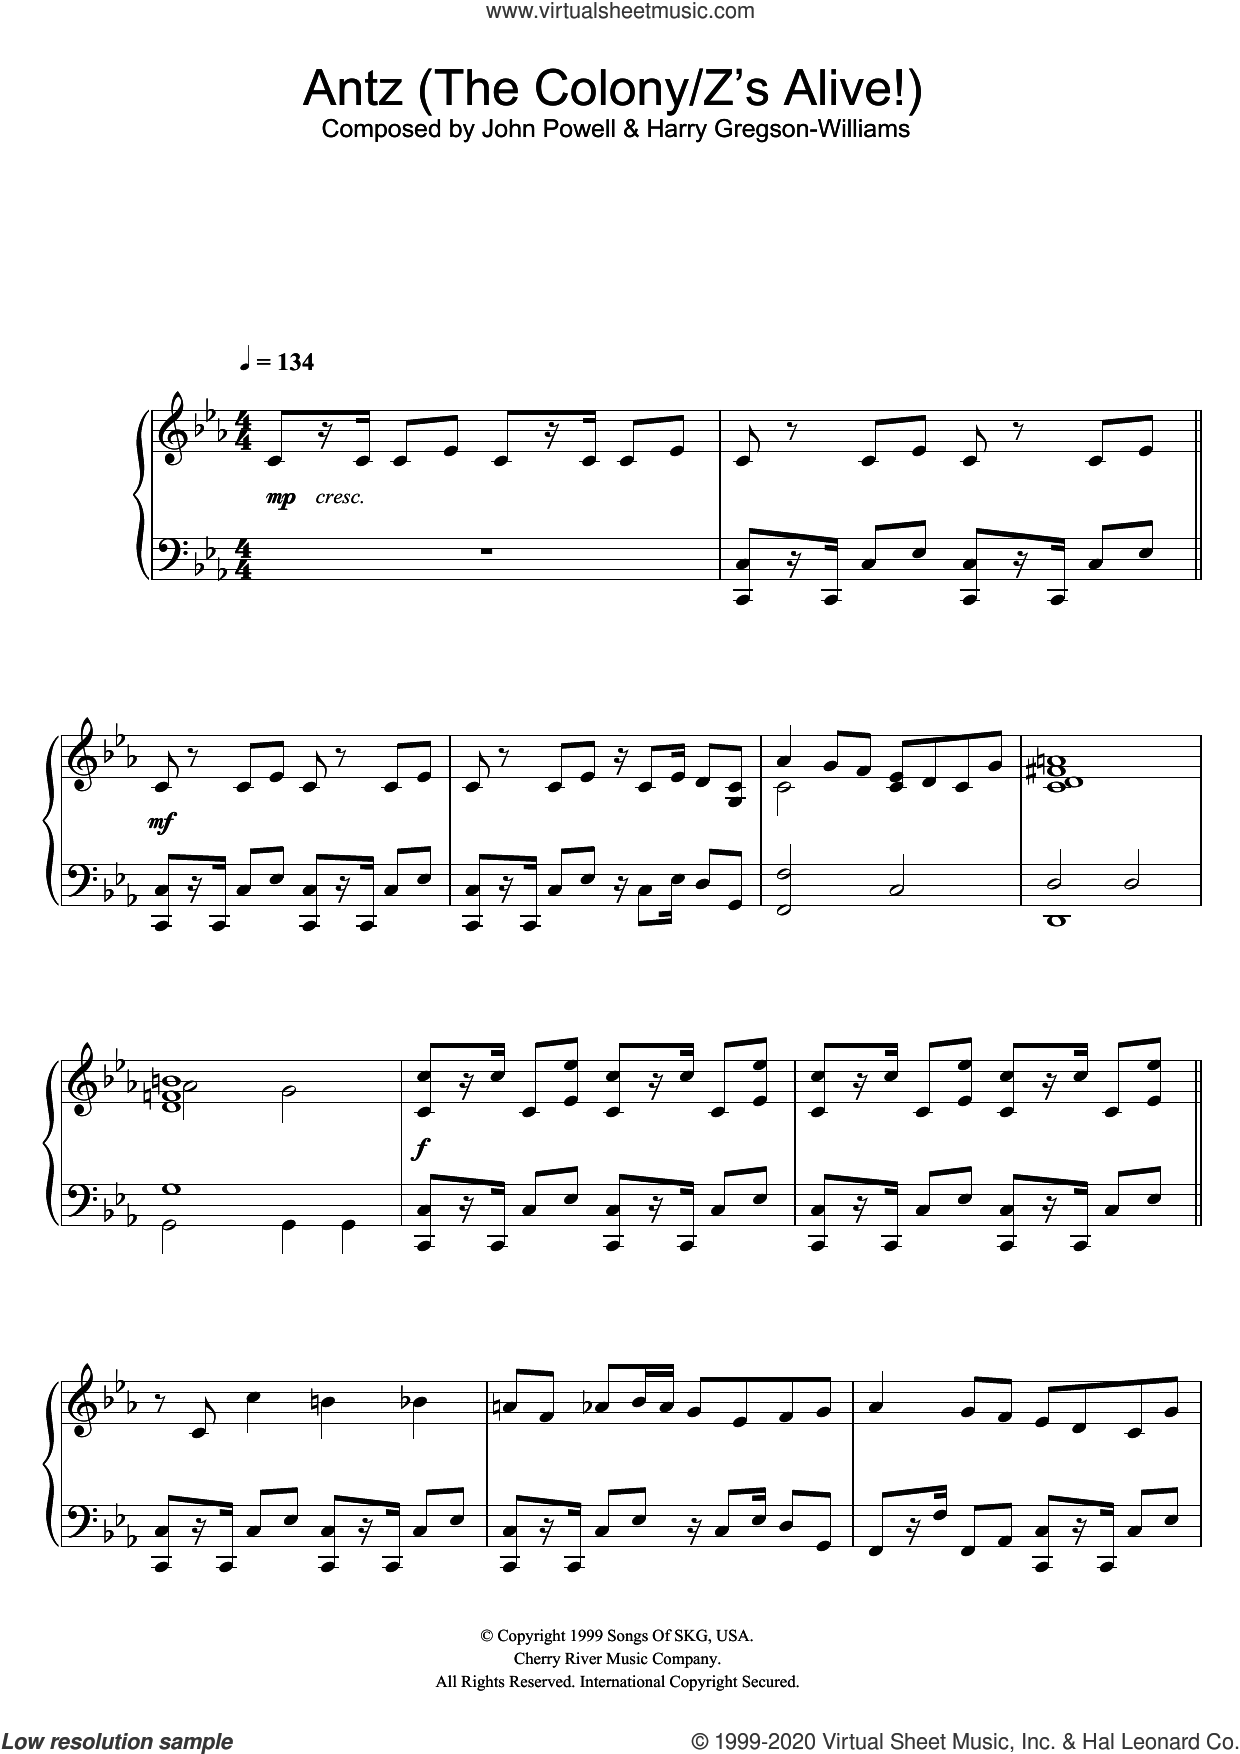 Antz (The Colony/Z's Alive!) sheet music for piano solo by Harry Gregson-Williams and John Powell, Harry Gregson-Williams and John Powell, intermediate skill level